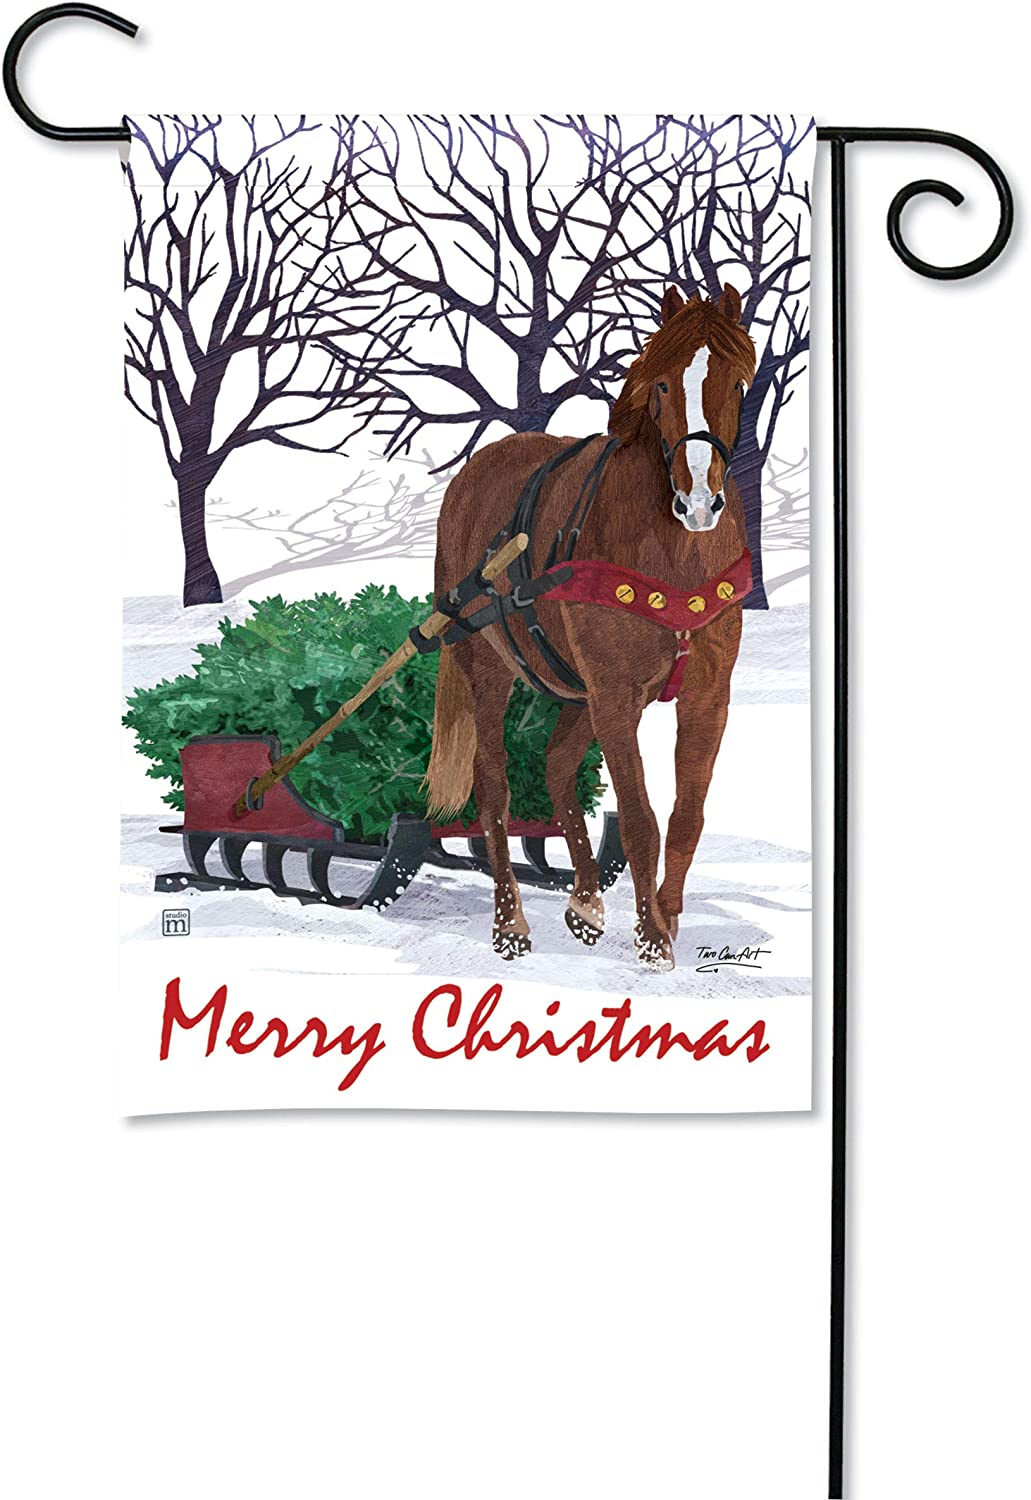 BreezeArt Studio M Horse Drawn Sled Winter Christmas Garden Flag - Premium Quality, 12.5 x 18 Inches